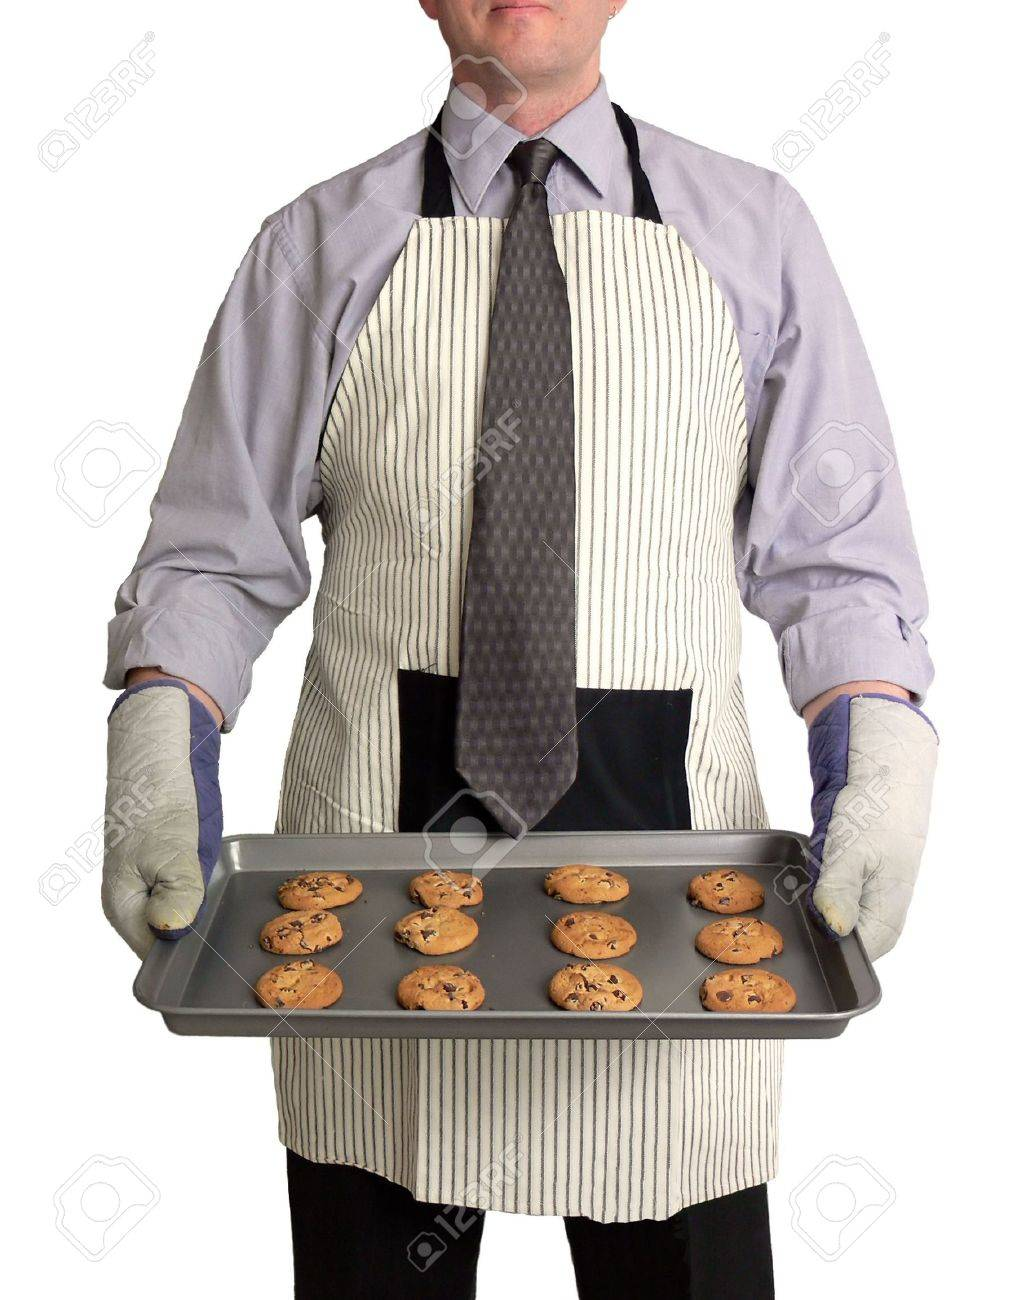 Image of a man against a white background, wearing a kitchen apron and oven mitts over business attire. He is holding a cookie sheet full of freshly-baked chocolate chip cookies in front of him. Stock Photo - 407670